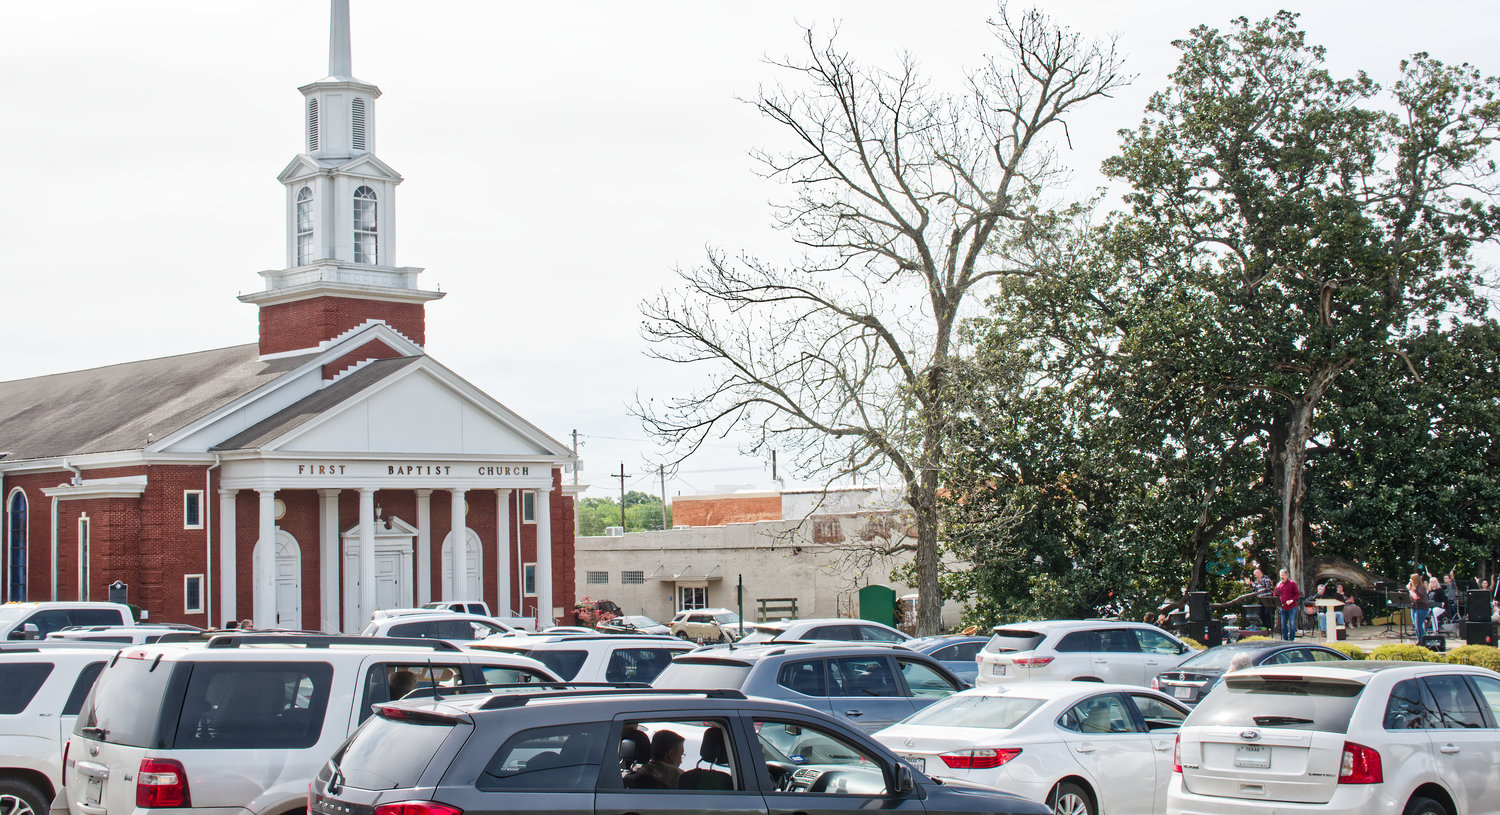 Dozens of churchgoers gathered in the parking lot across from their usual meeting place at the First Baptist Church in Mineola on Sunday, March 29, practicing social distancing while singing from their vehicles, led by an amplified praise team at Peterson Park.